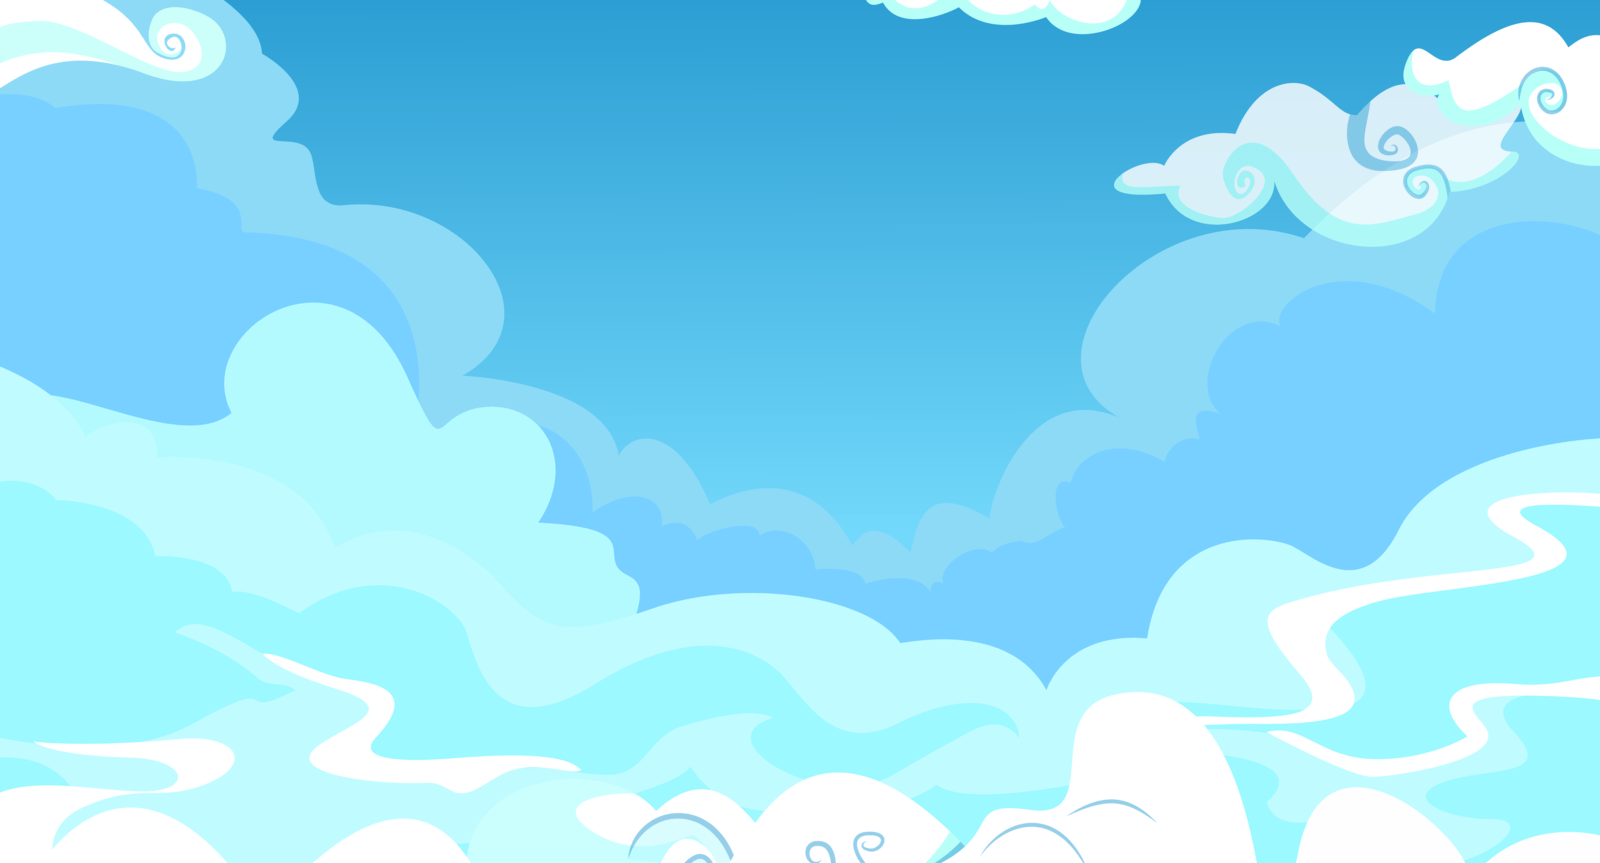 Cloudy Sky Backgrounds by GoblinEngineer